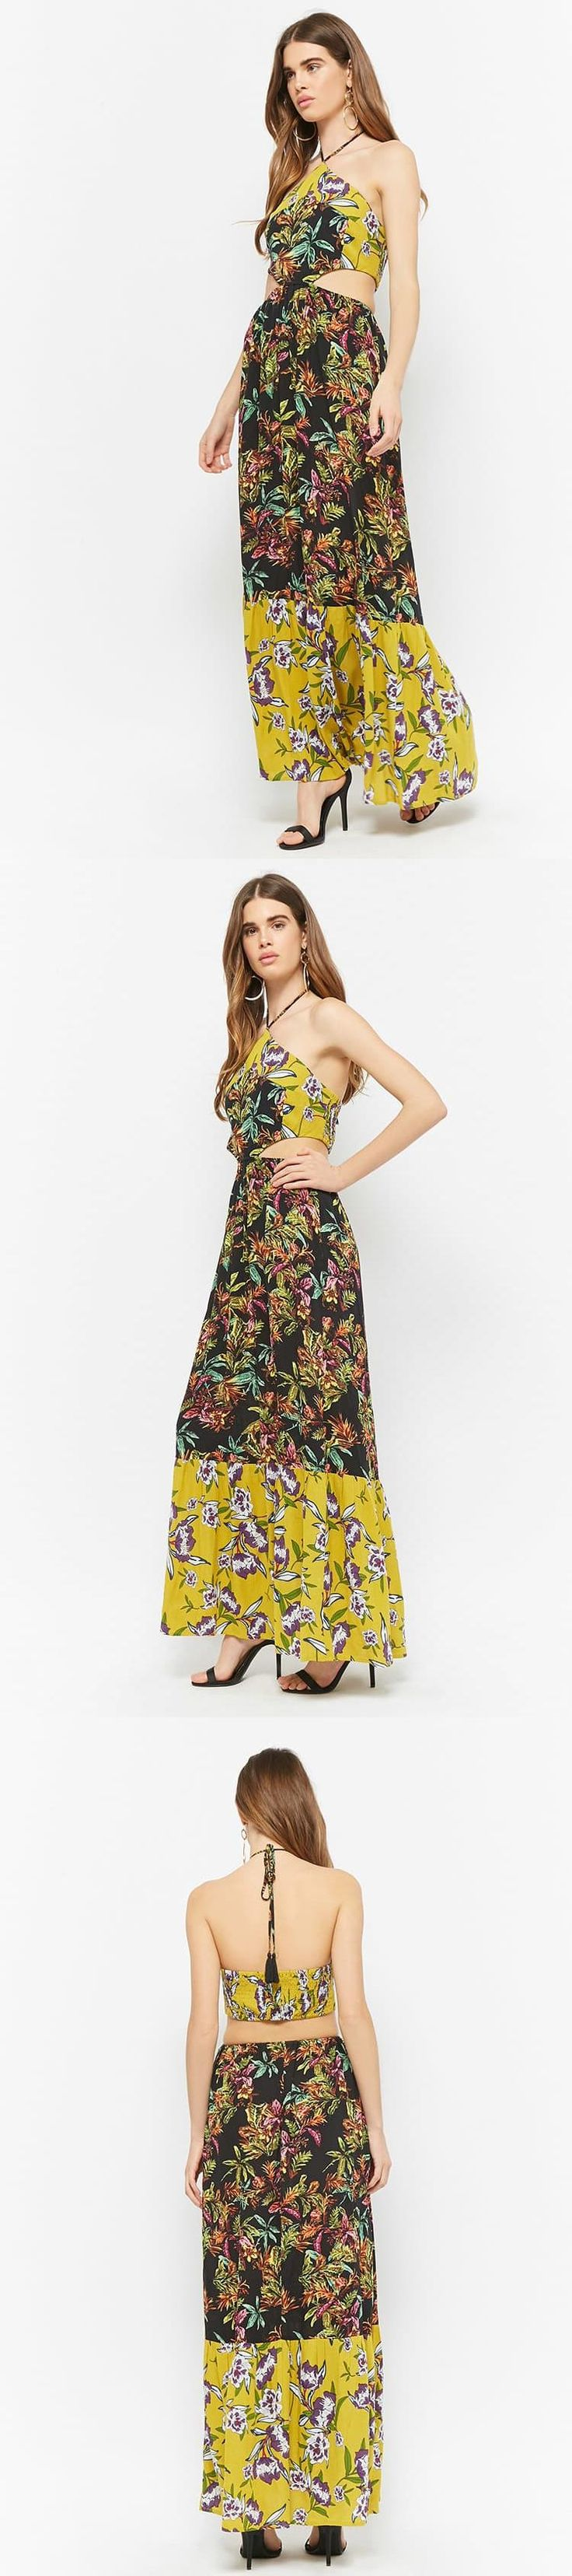 Floral Halter Maxi Dress // 45.00 USD // Forever 21